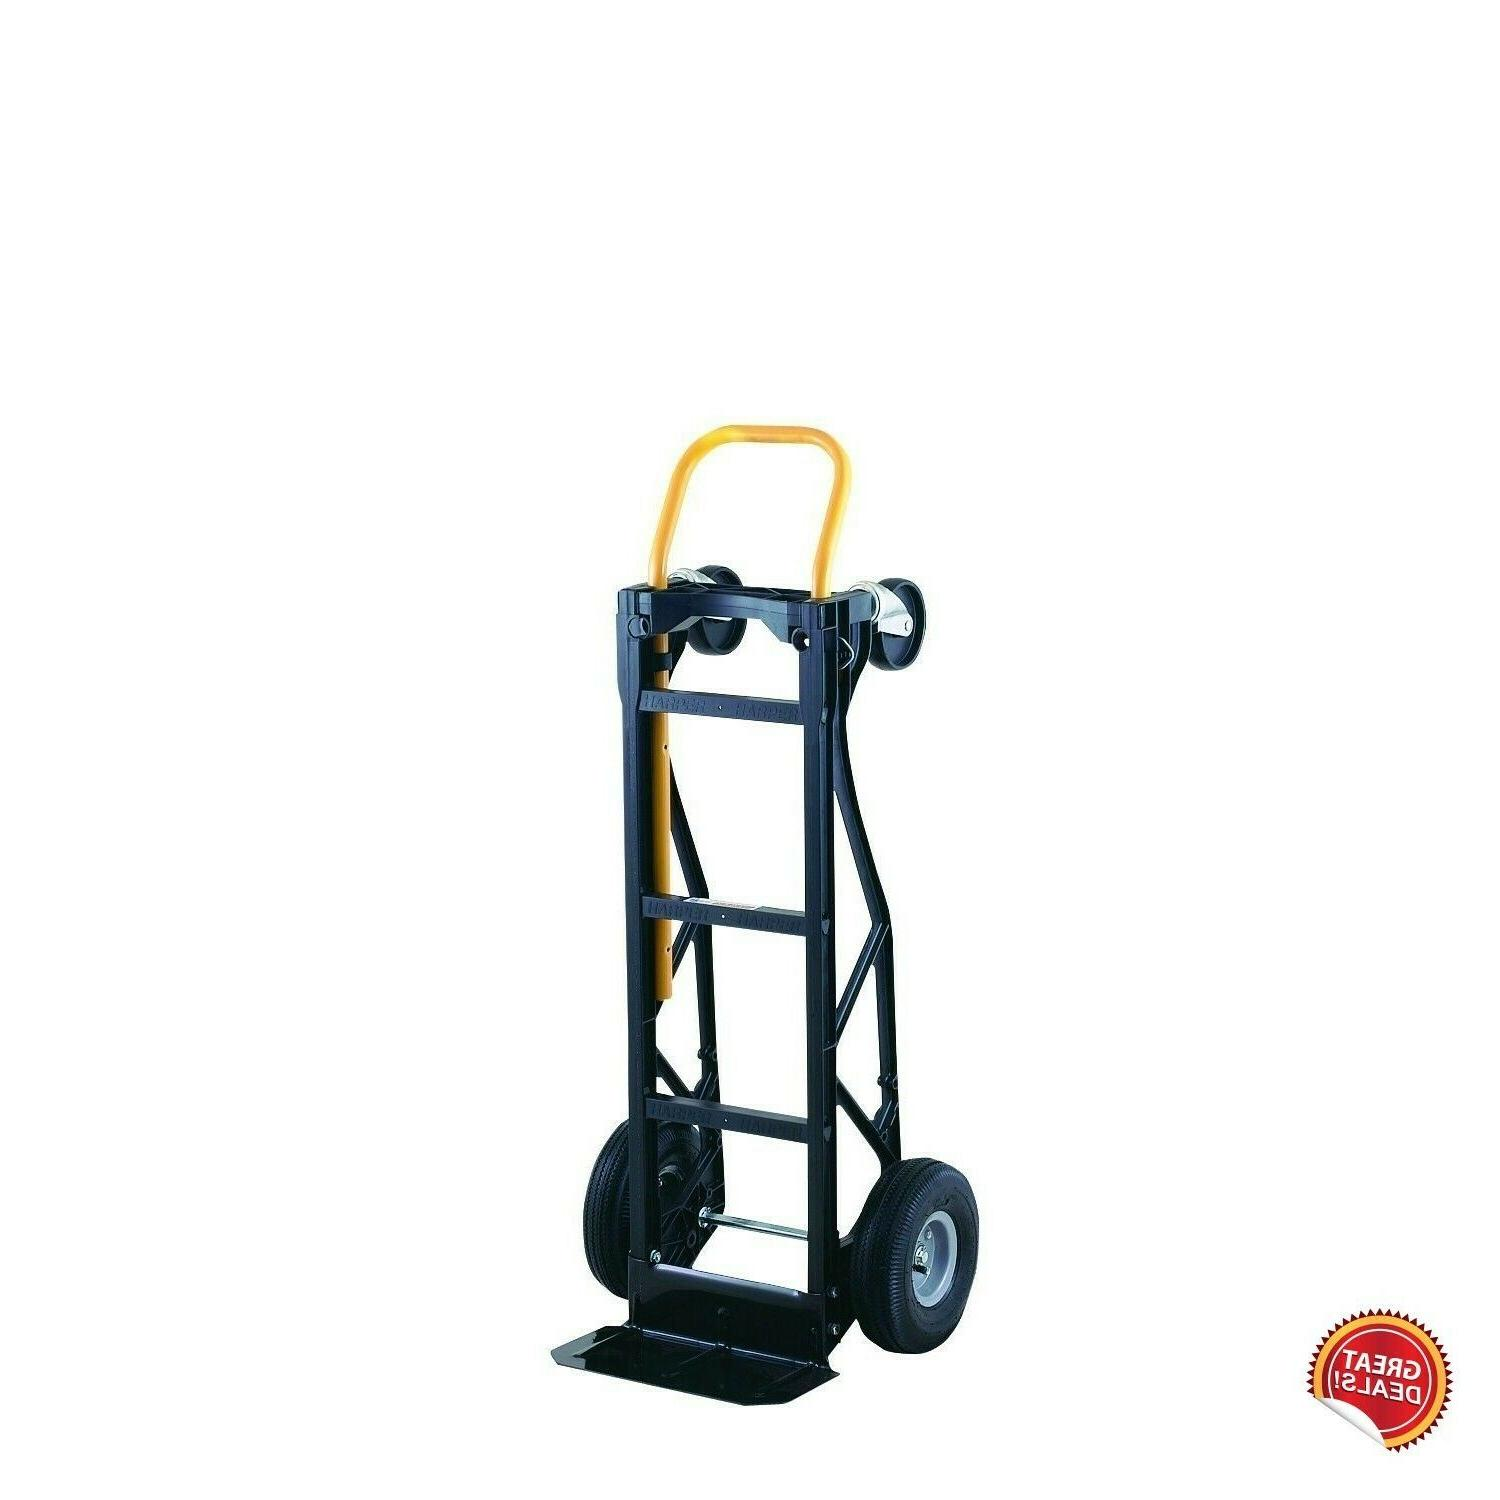 Dolly Duty Wheel Hand Truck Convertible